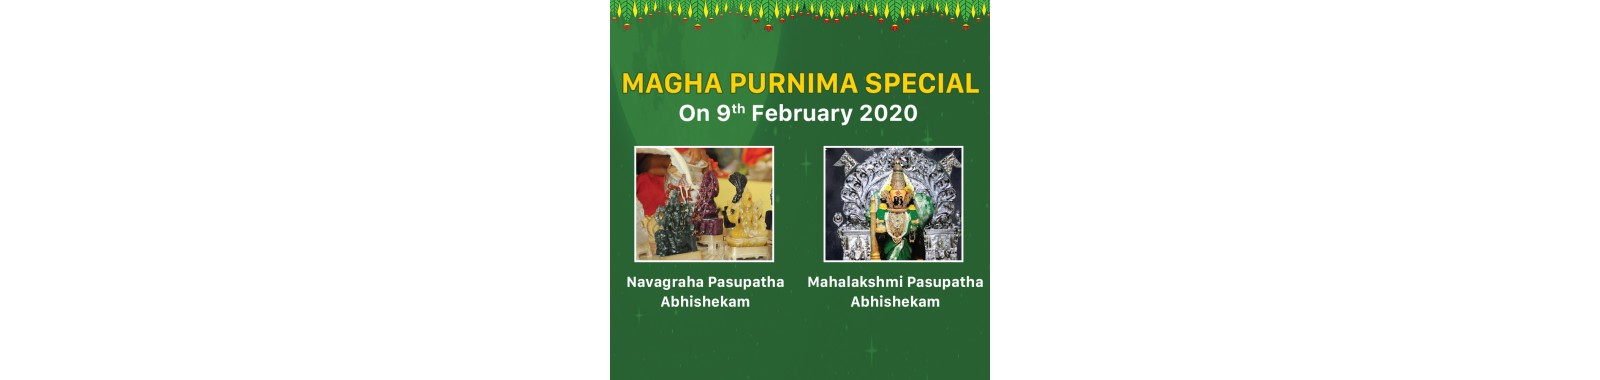 Magha Purnima Special